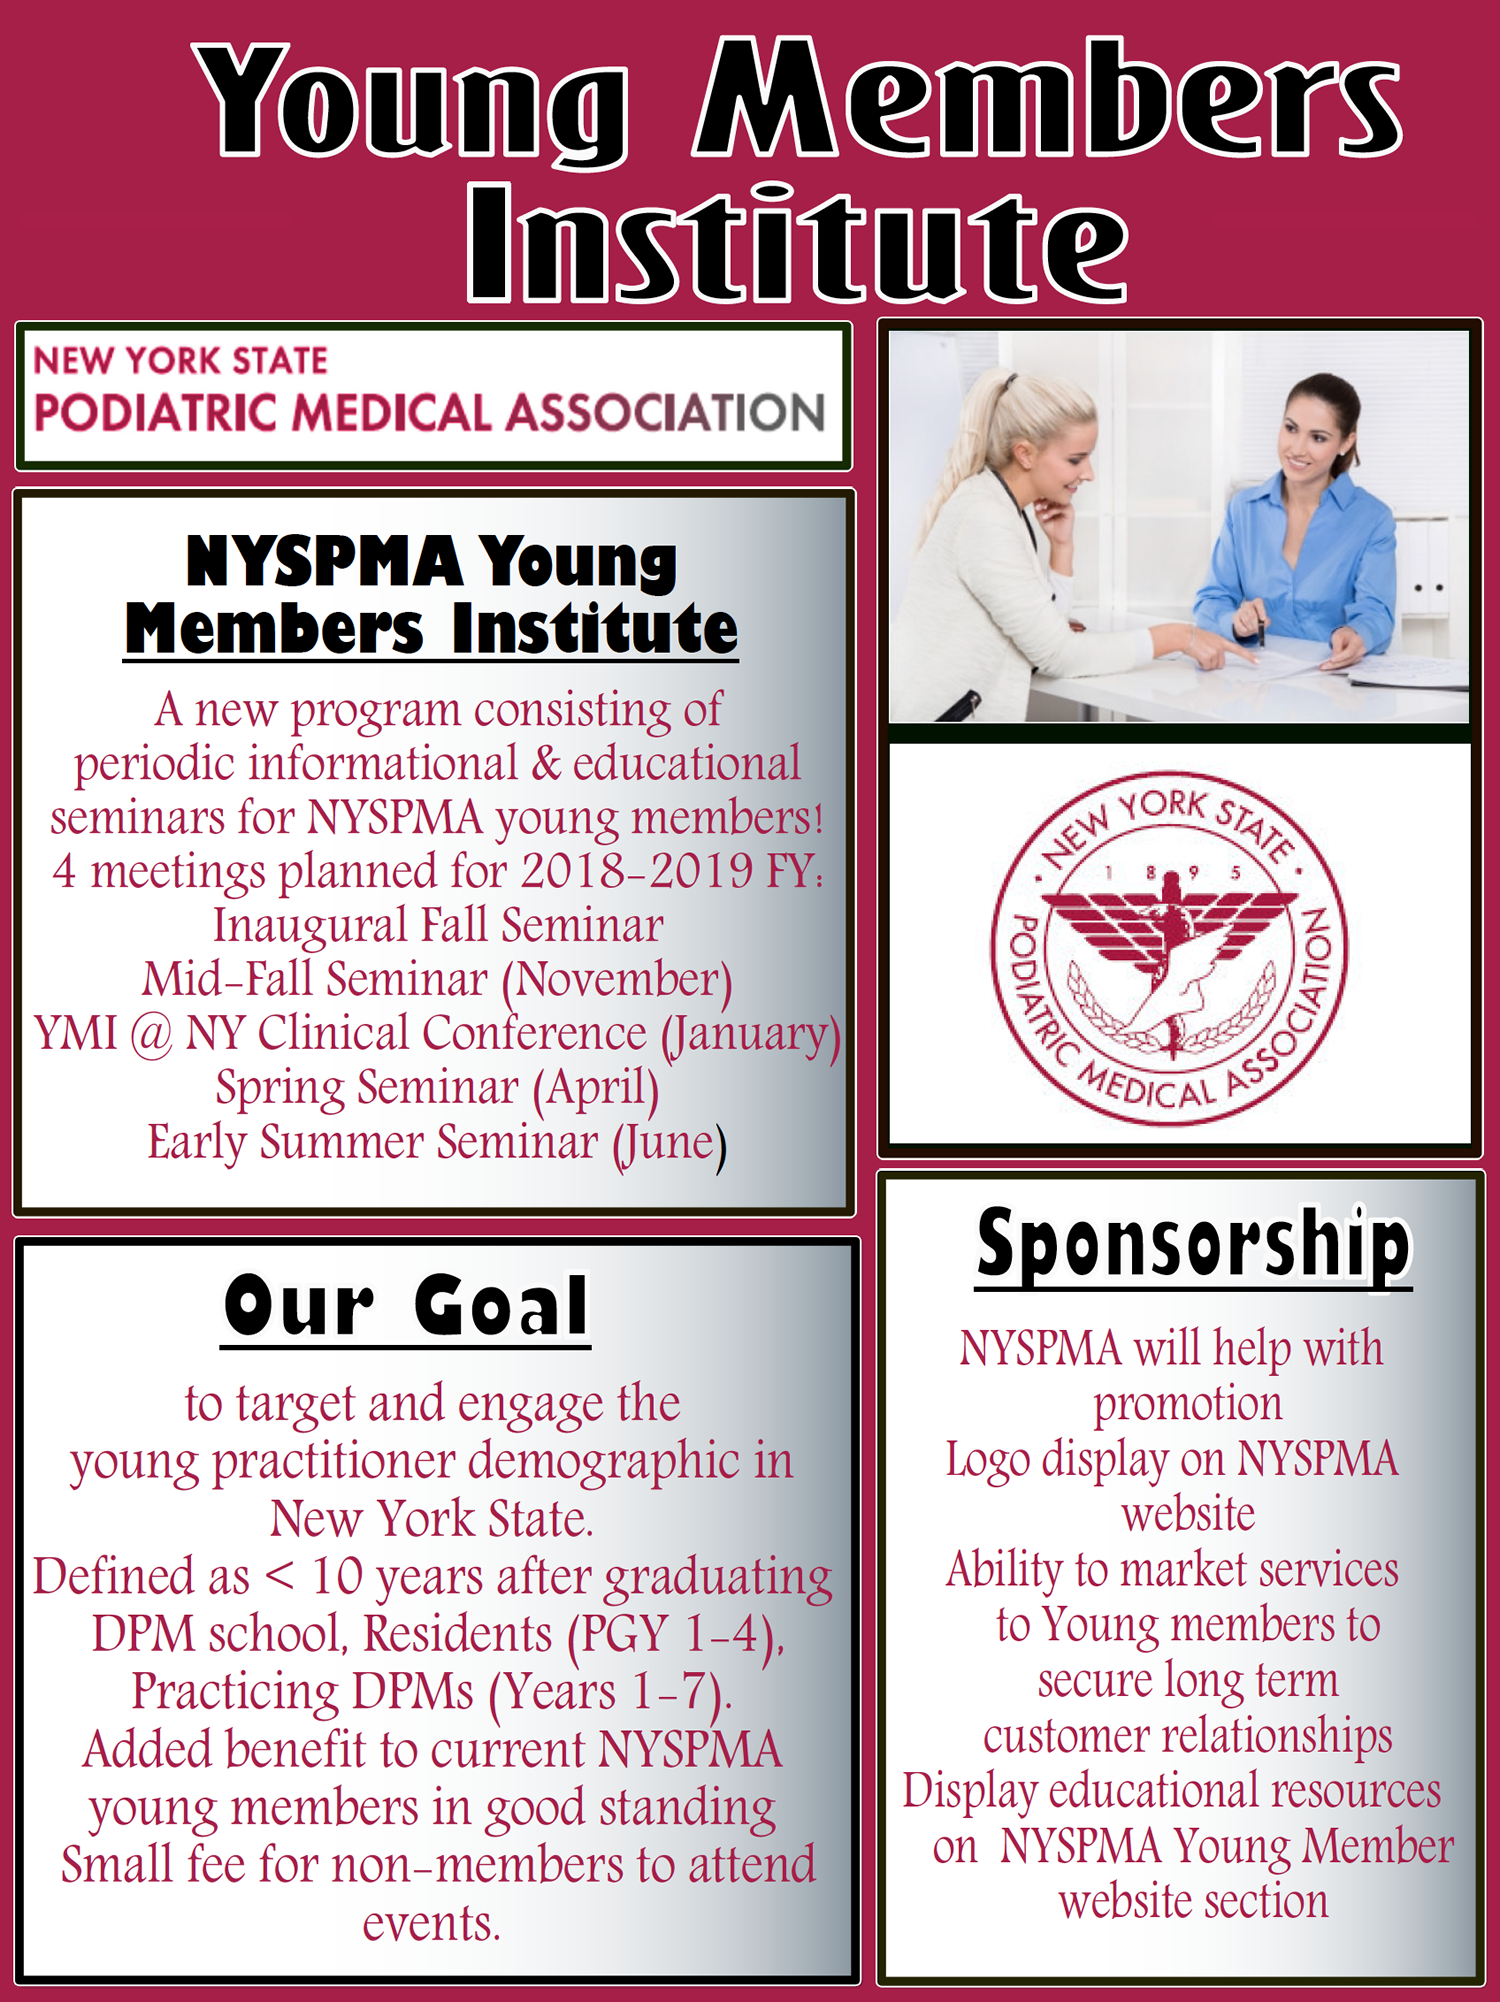 NYSPMA Young Member's Institute